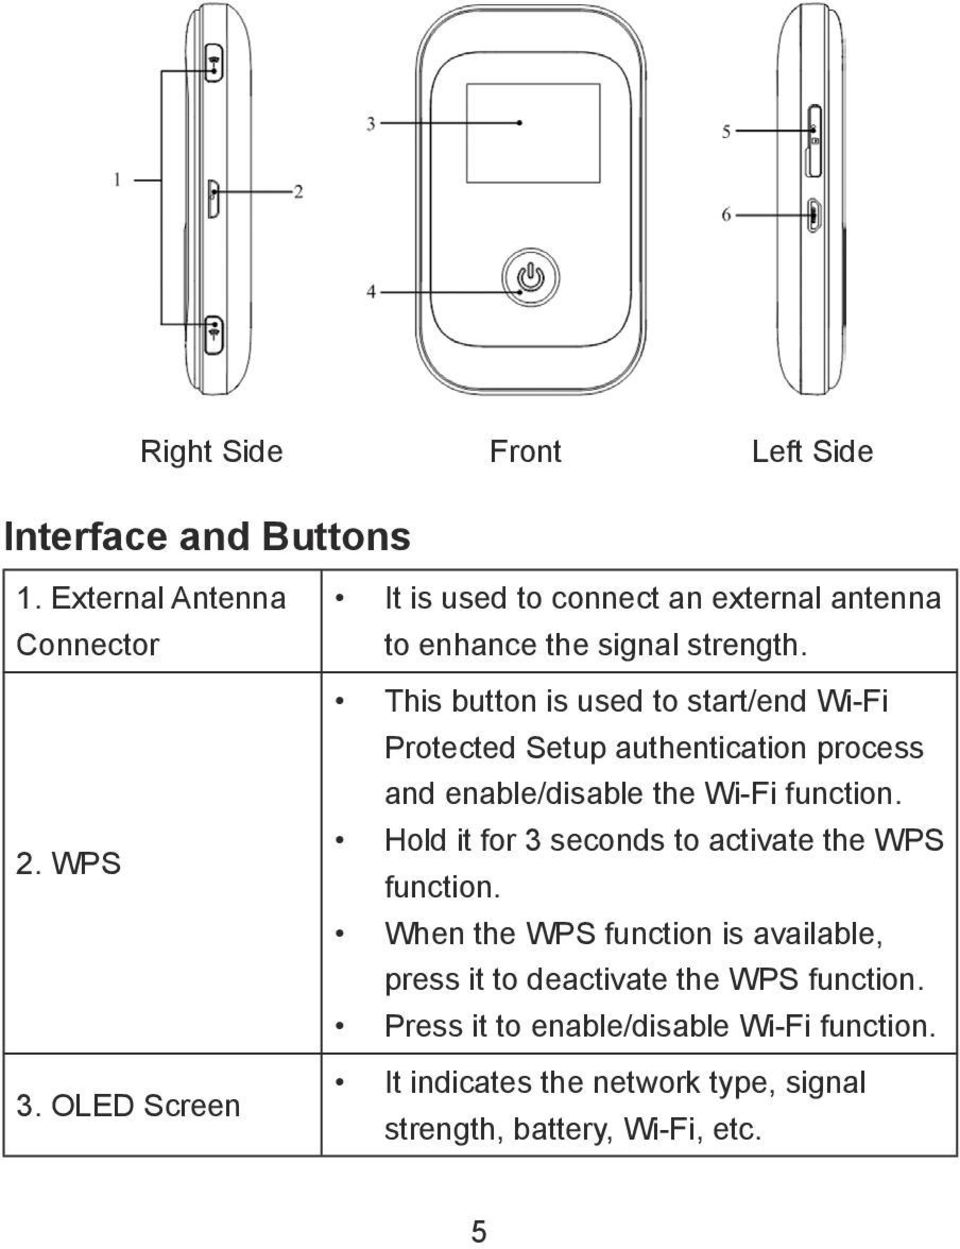 This button is used to start/end Wi-Fi Protected Setup authentication process and enable/disable the Wi-Fi function.